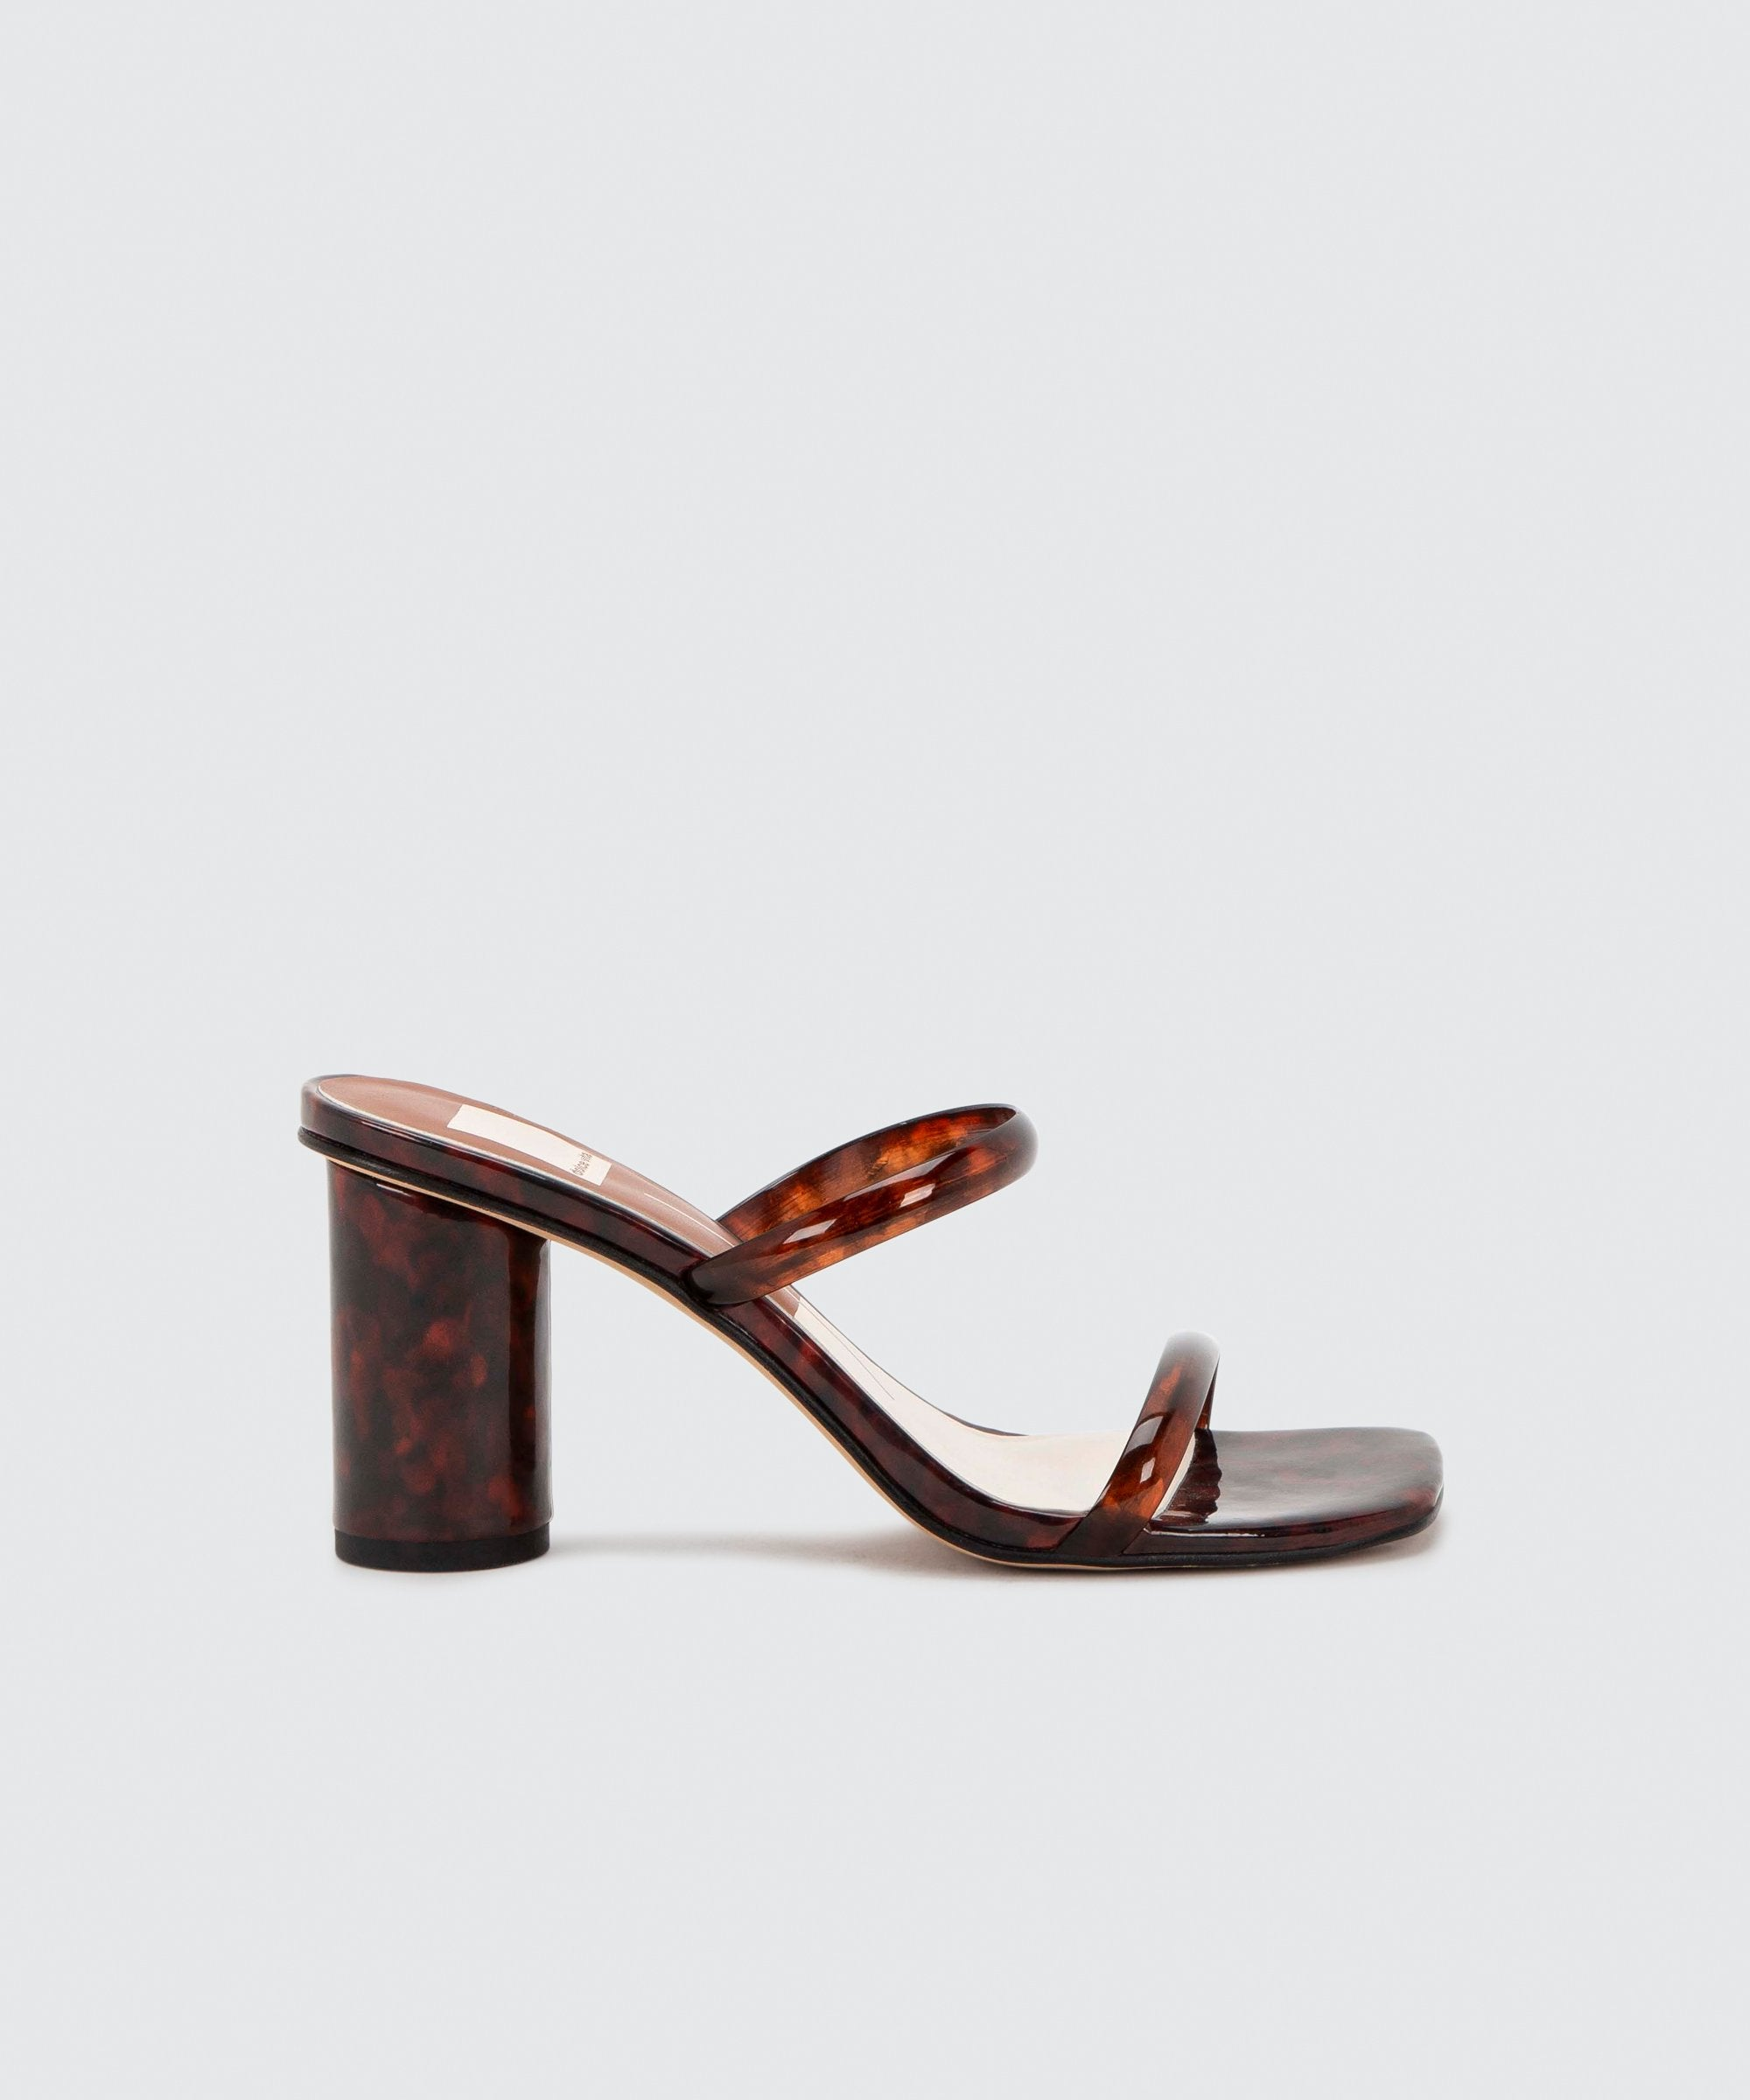 Load image into Gallery viewer, Dolce Vita Noles Heels Tortoise | Heeled Sandals